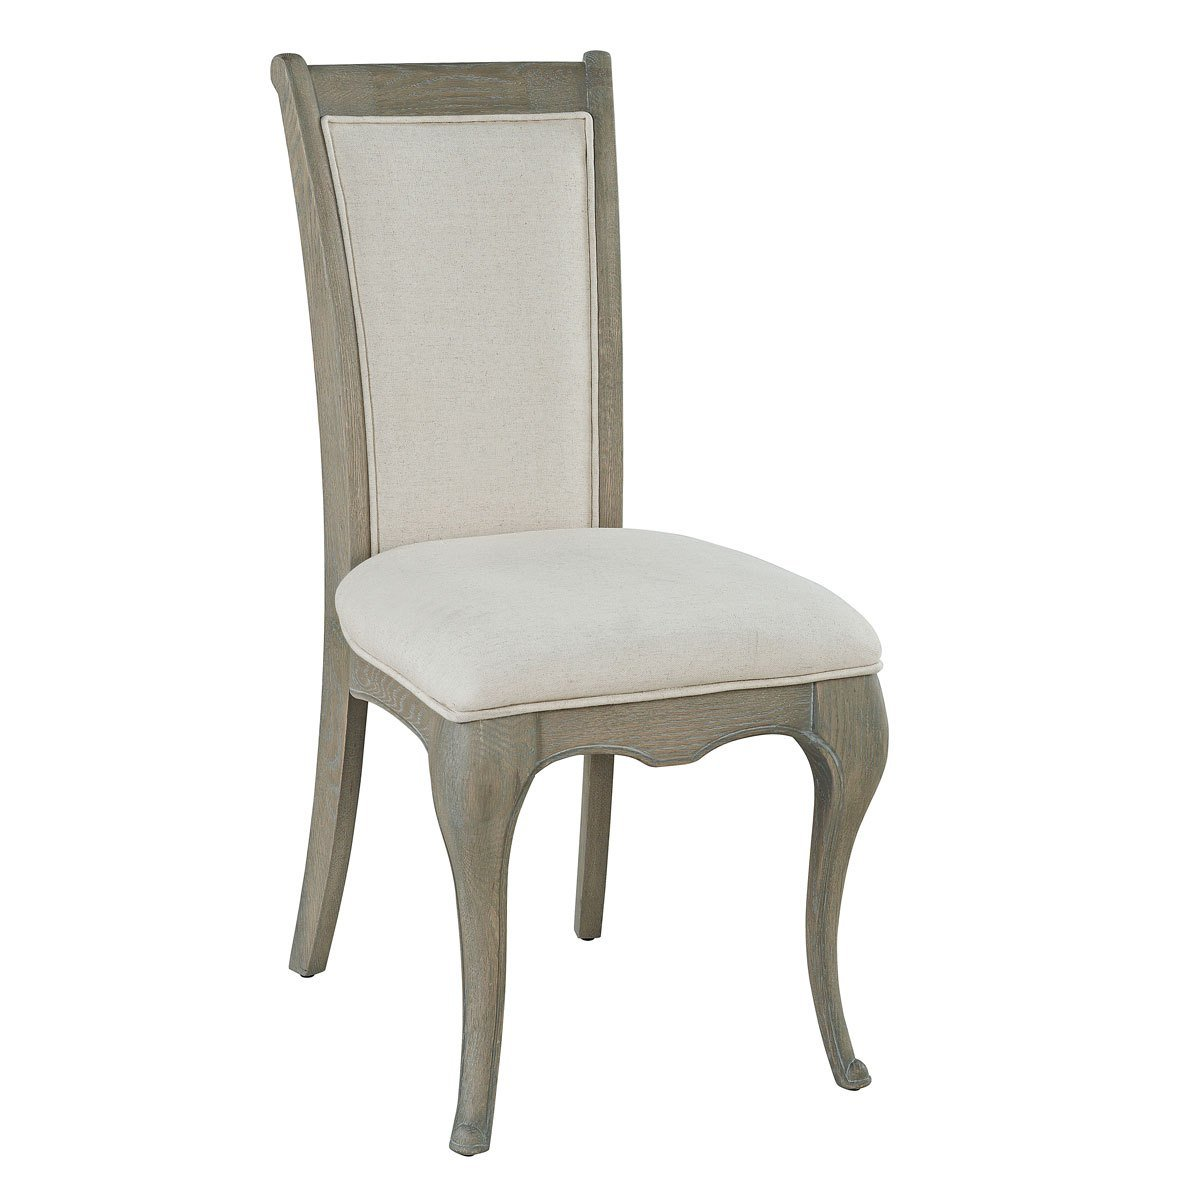 Best Camille Bedroom Chair Willis Gambier With Pictures